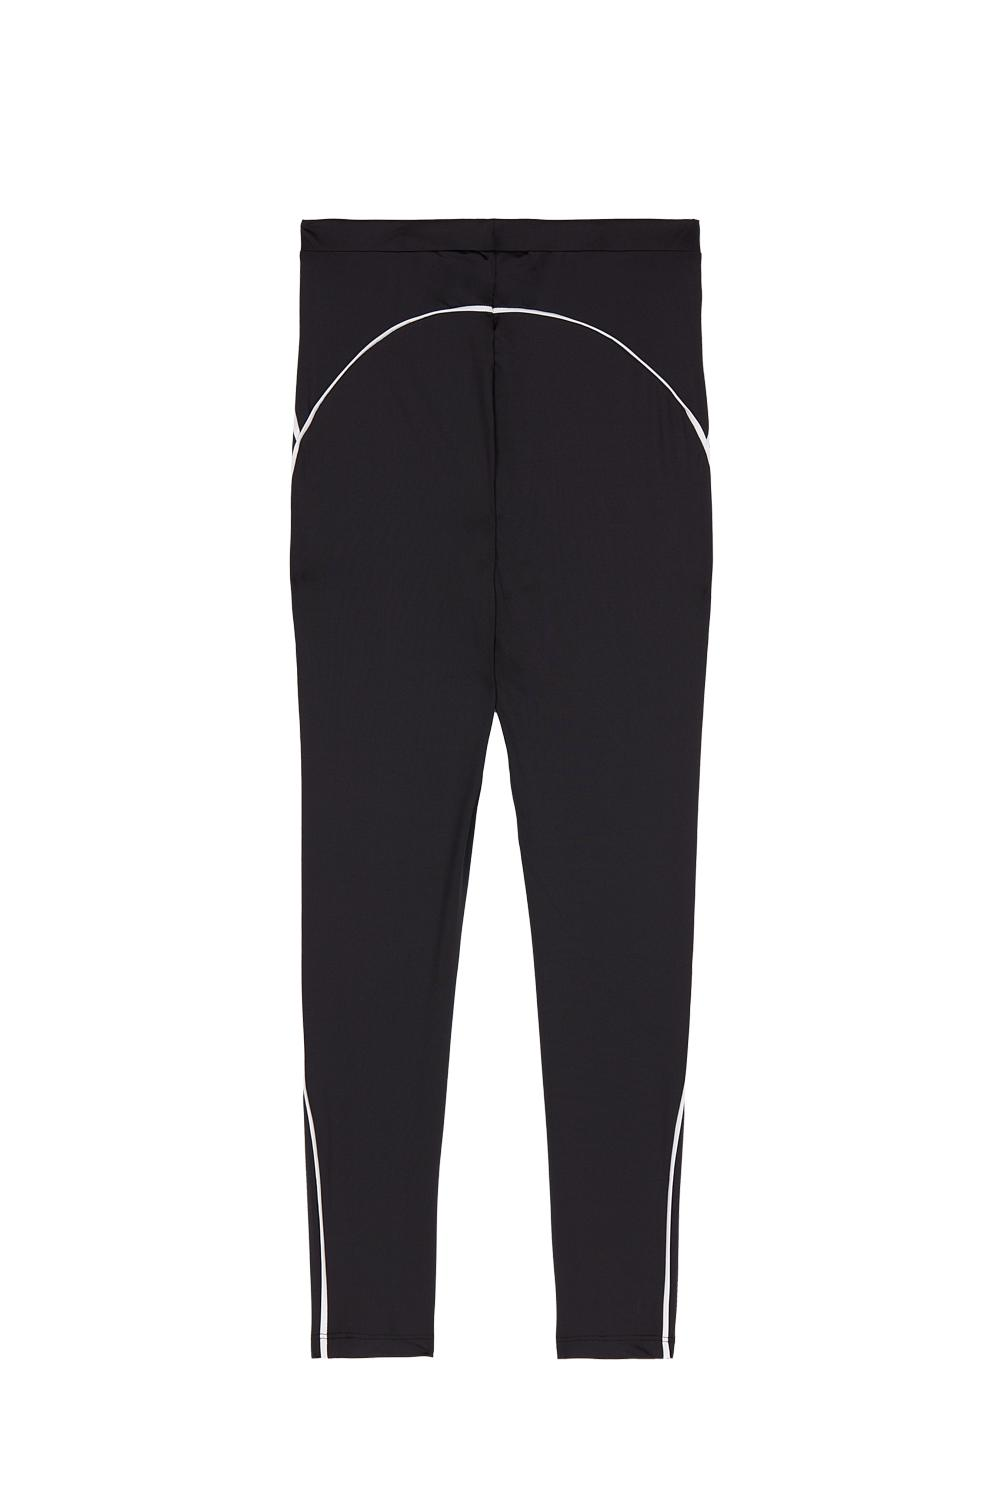 Leggings Microfibra Desportivas